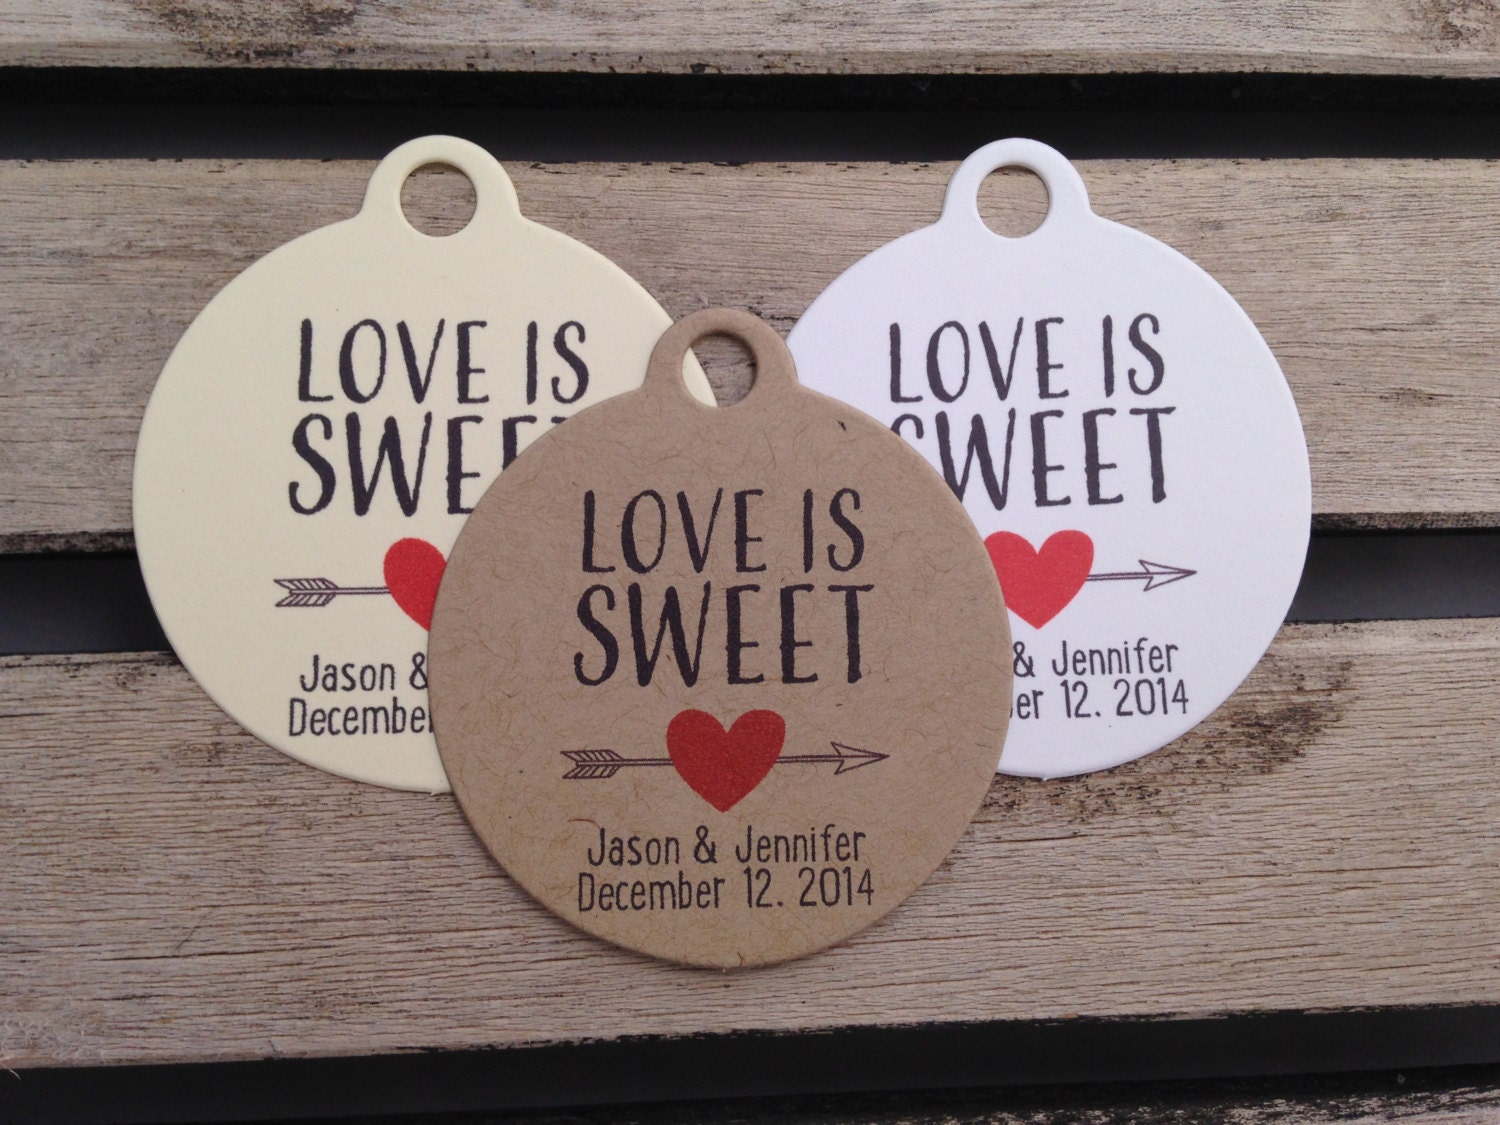 Love Is Sweet Wedding Gift Tags : Wedding Gift Tags Love Is Sweet Wedding by FiendishPaperThingy